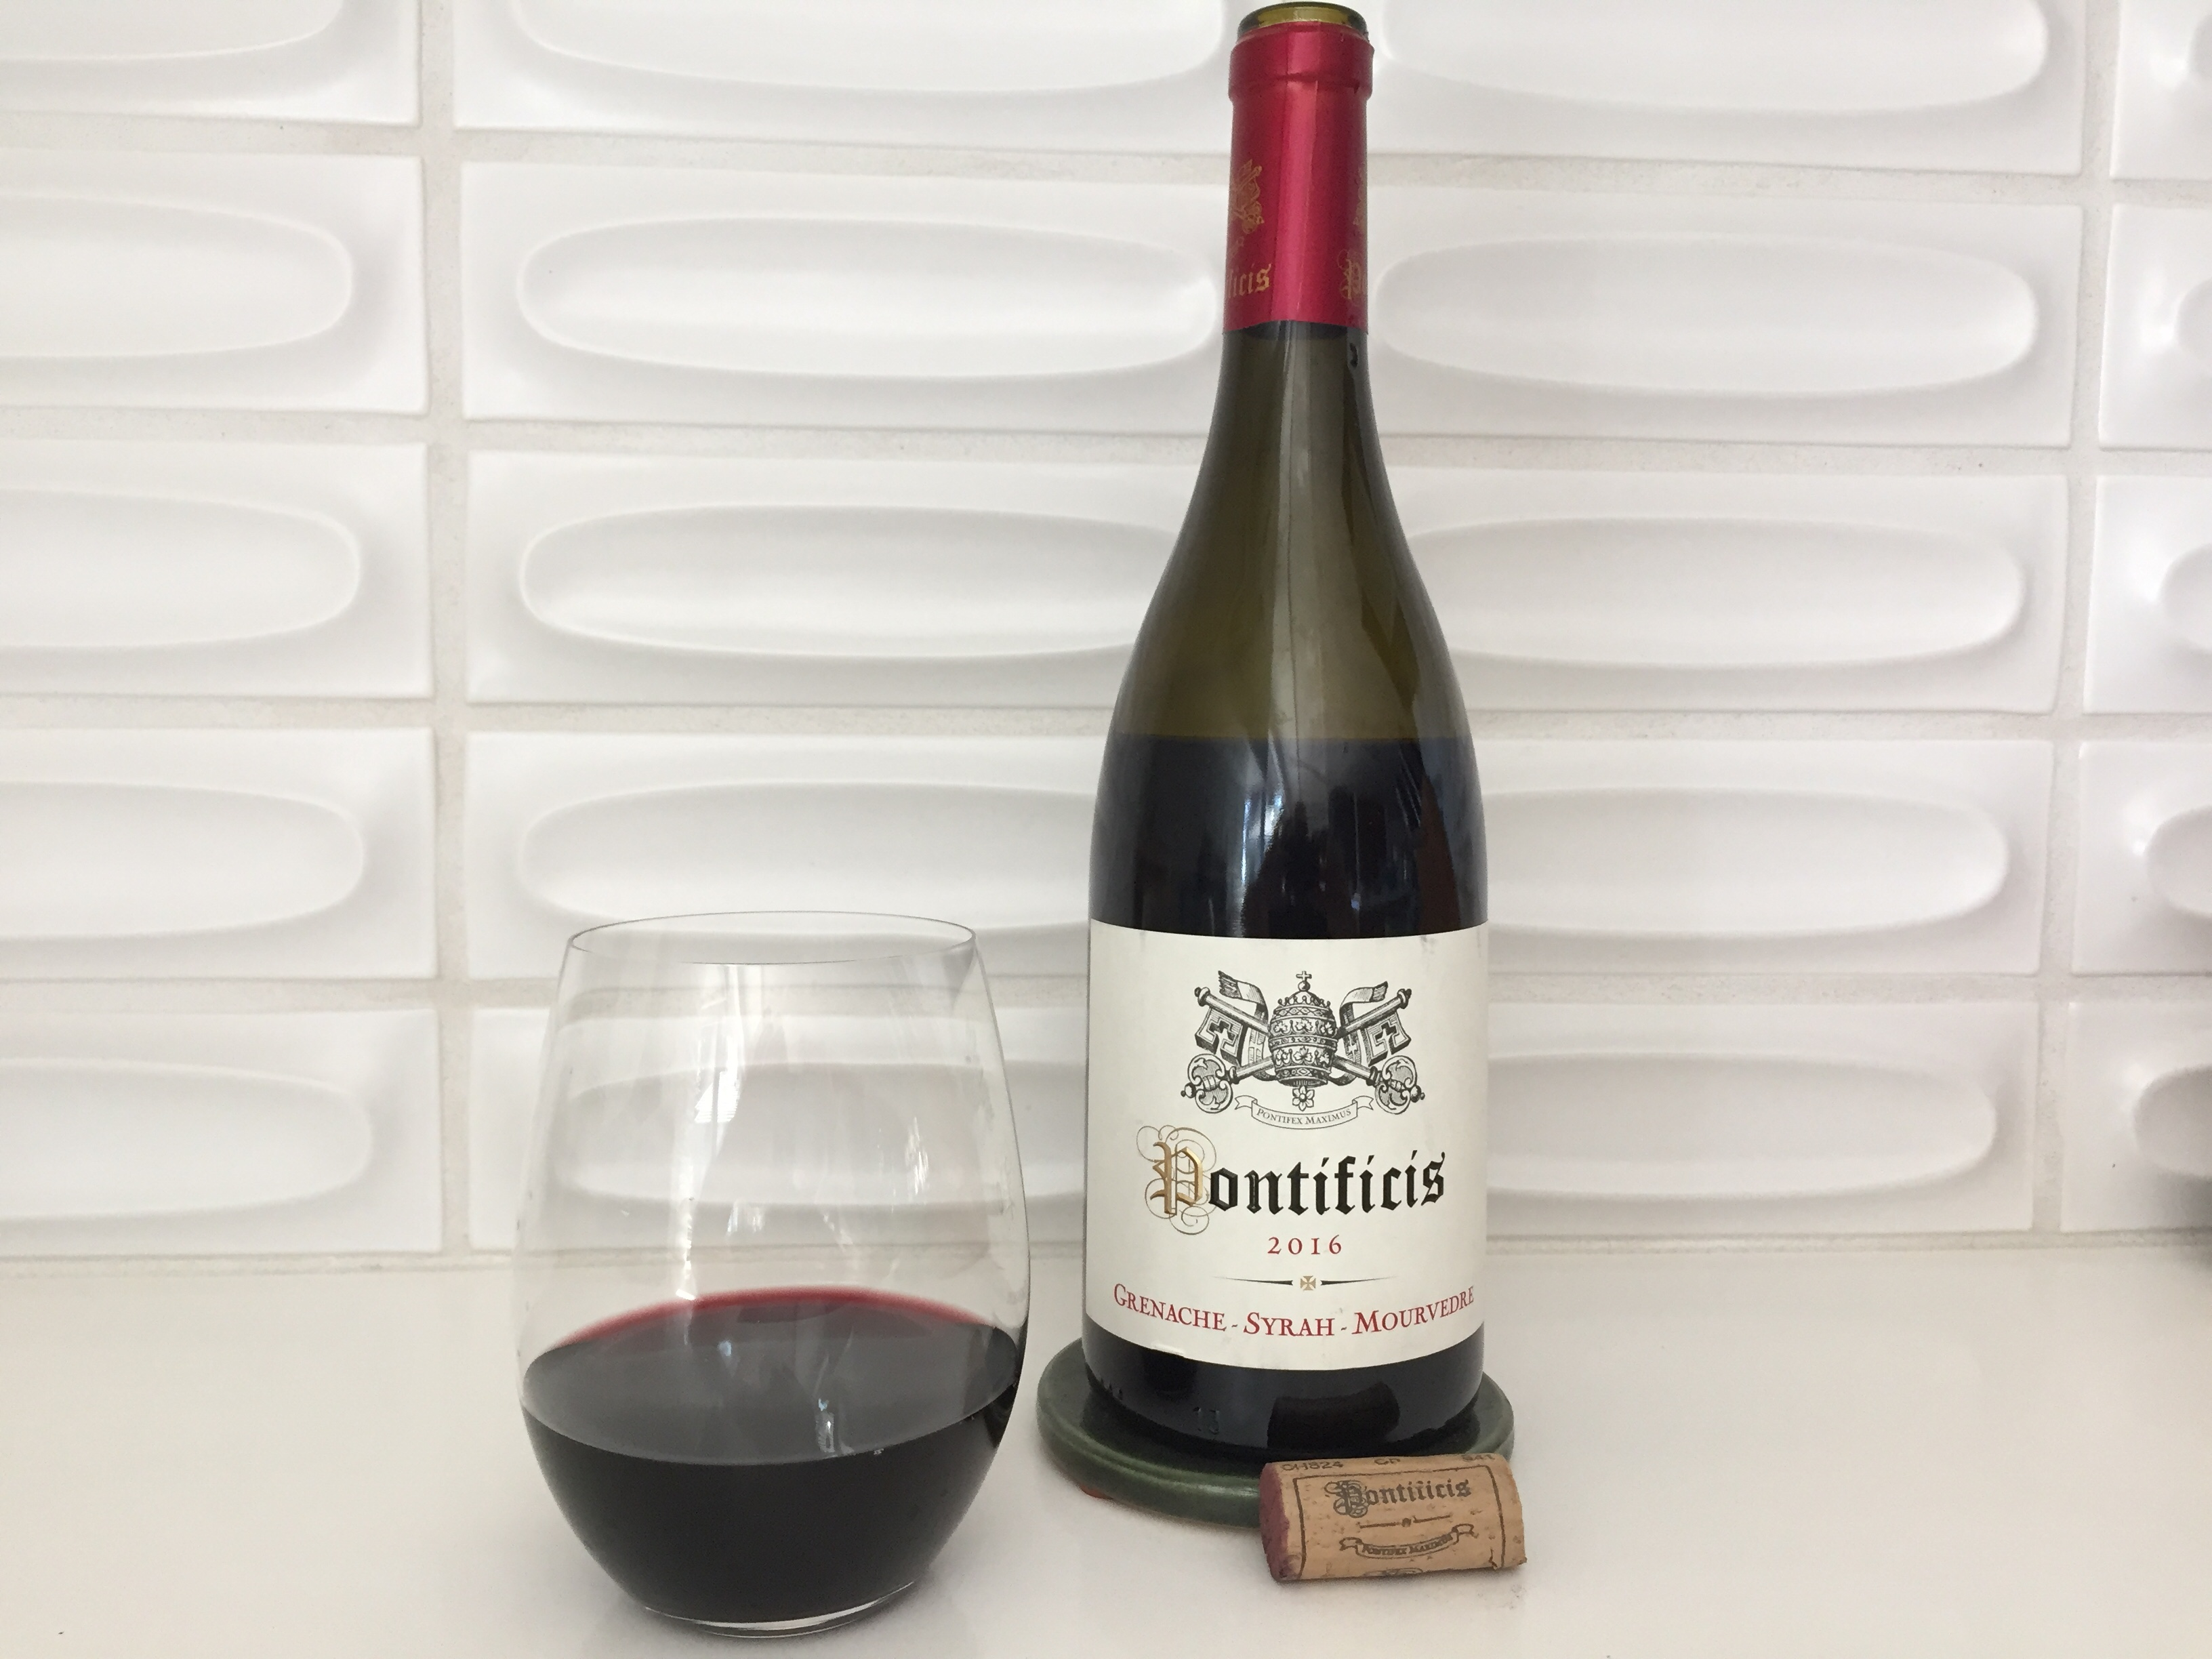 Glass and bottle of Pontificis GSM from Trader Joe's